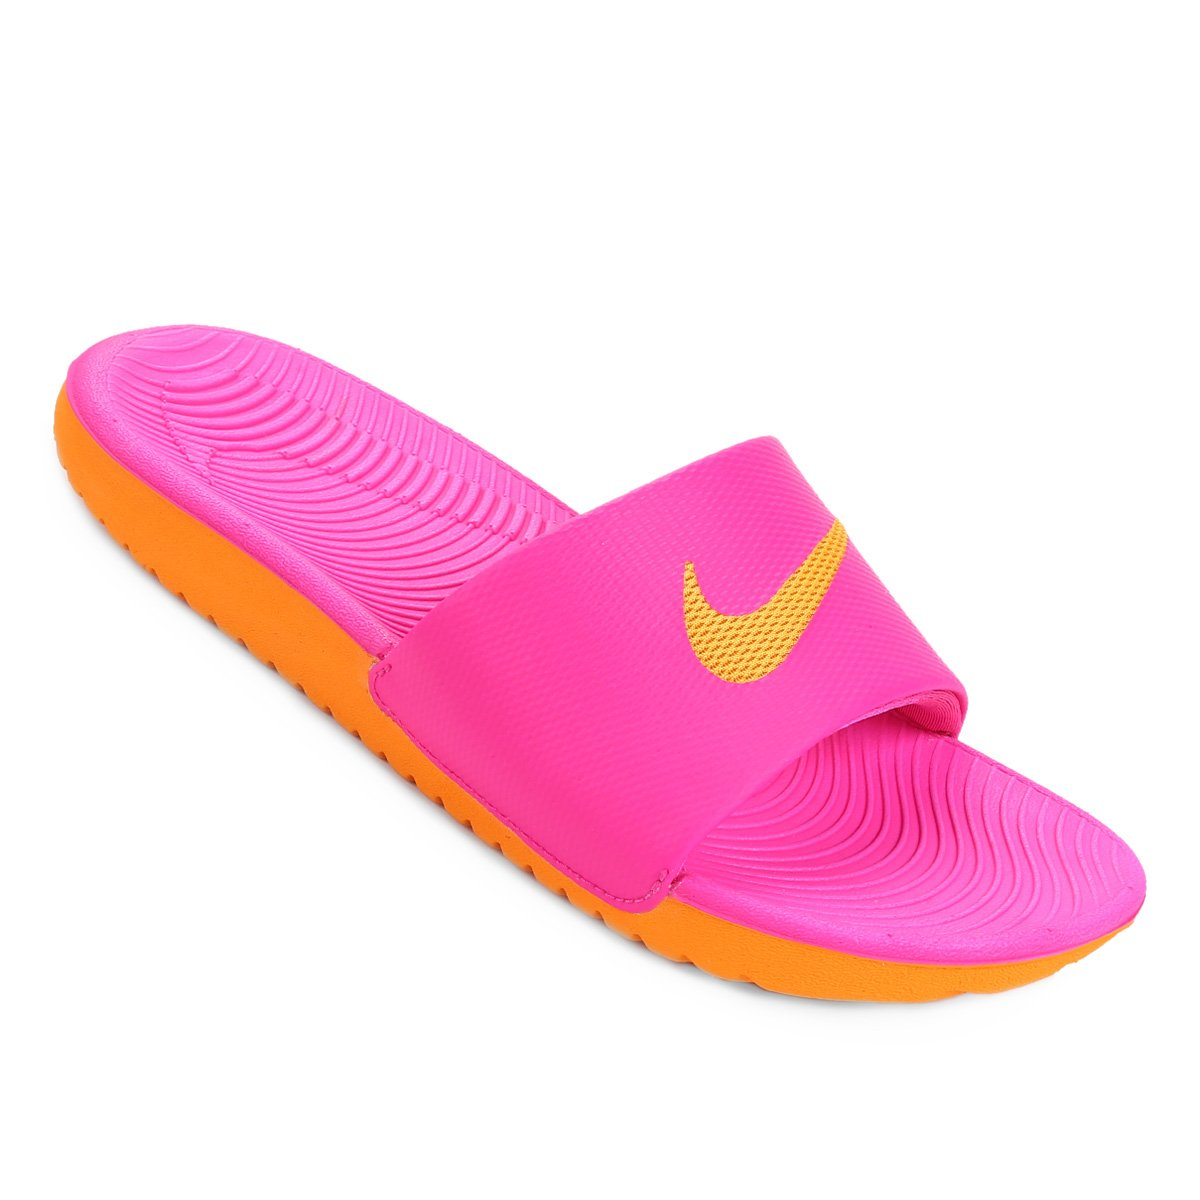 Chinelo Nike Kawa Slide Pink Prime/Orange Peel-Orange Peel